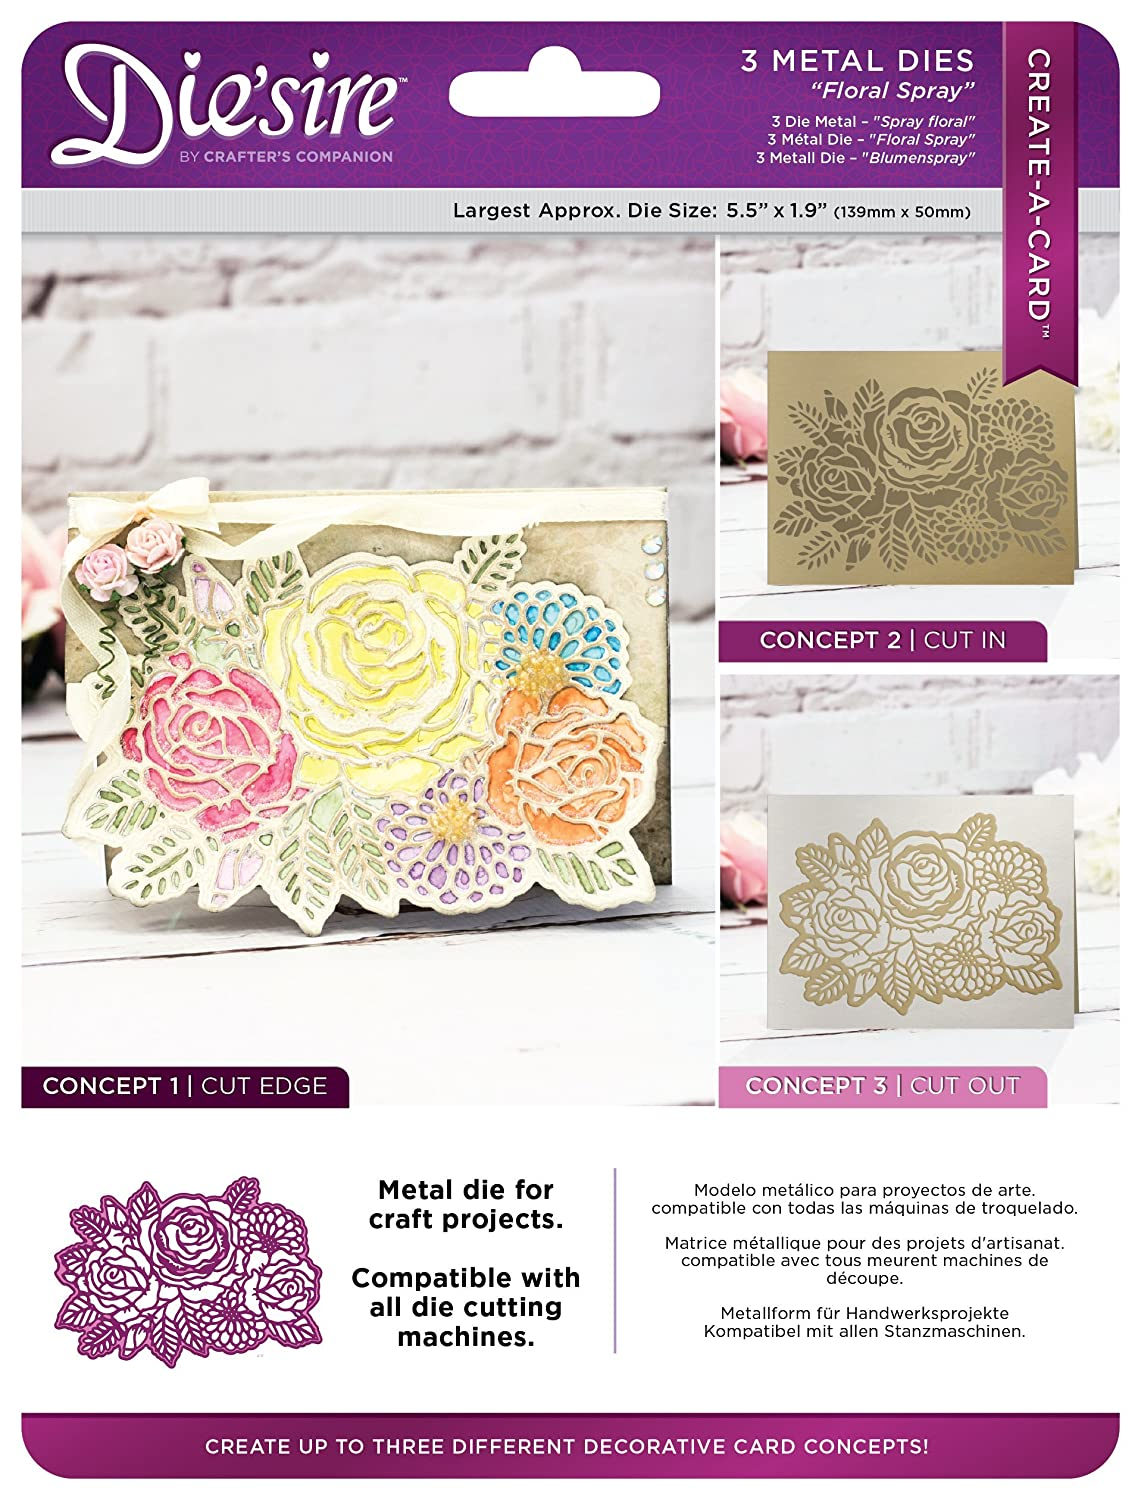 Die'sire DS-CAD-FLSP Create-a-Card Cut on Edge Dies - Floral Spray Metal Die, 17.4 x 22.5 x 0.02 cm, Silver Crafter' s Companion